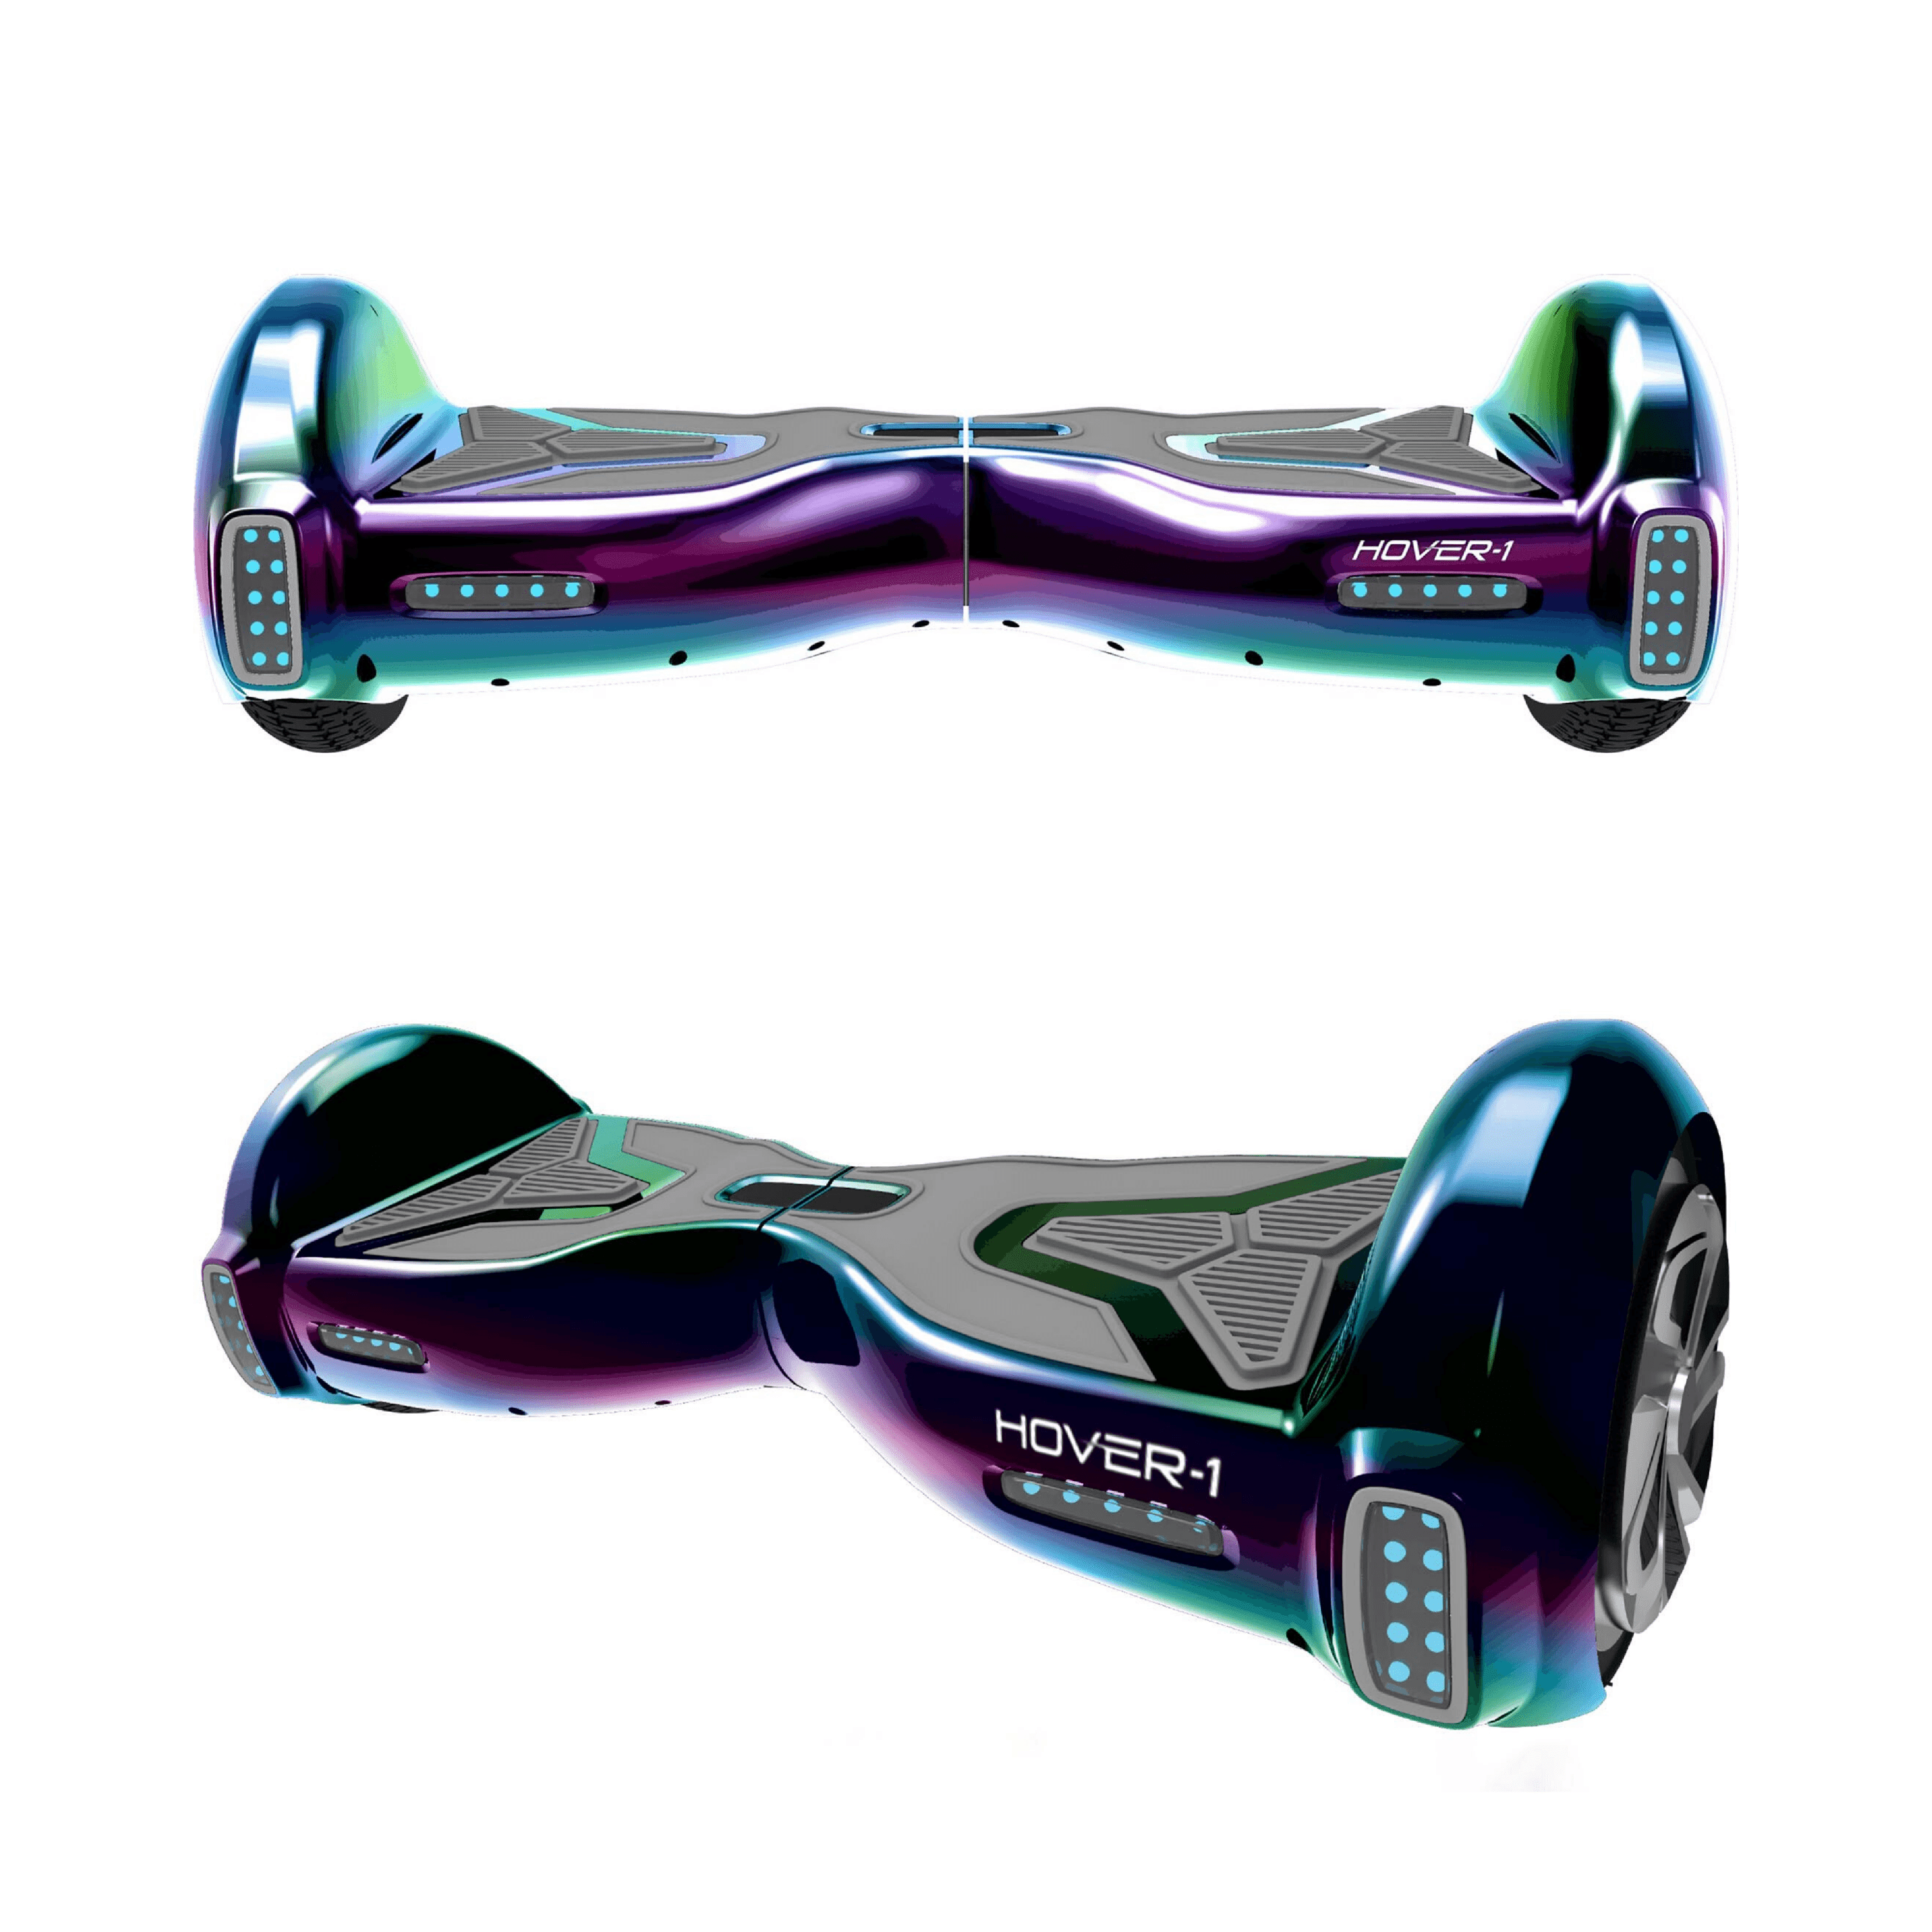 Hover-1 H1 Hoverboard - Iridescent